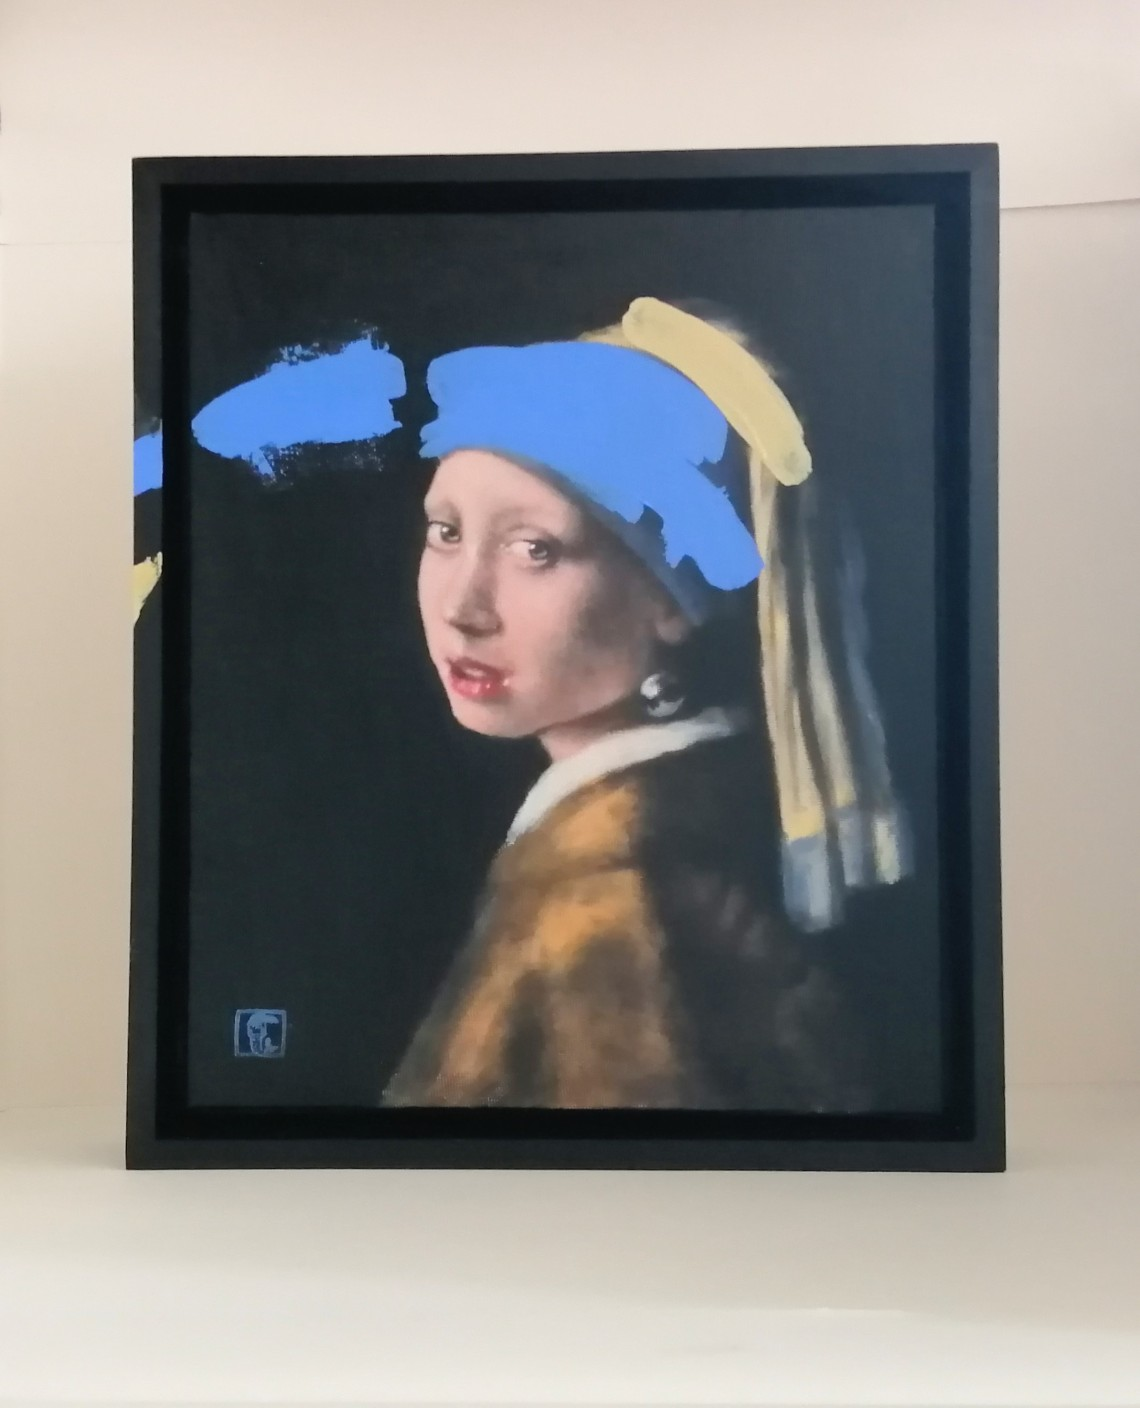 Ultramarine blue No4, after Vermeer's Girl with a pearl earring